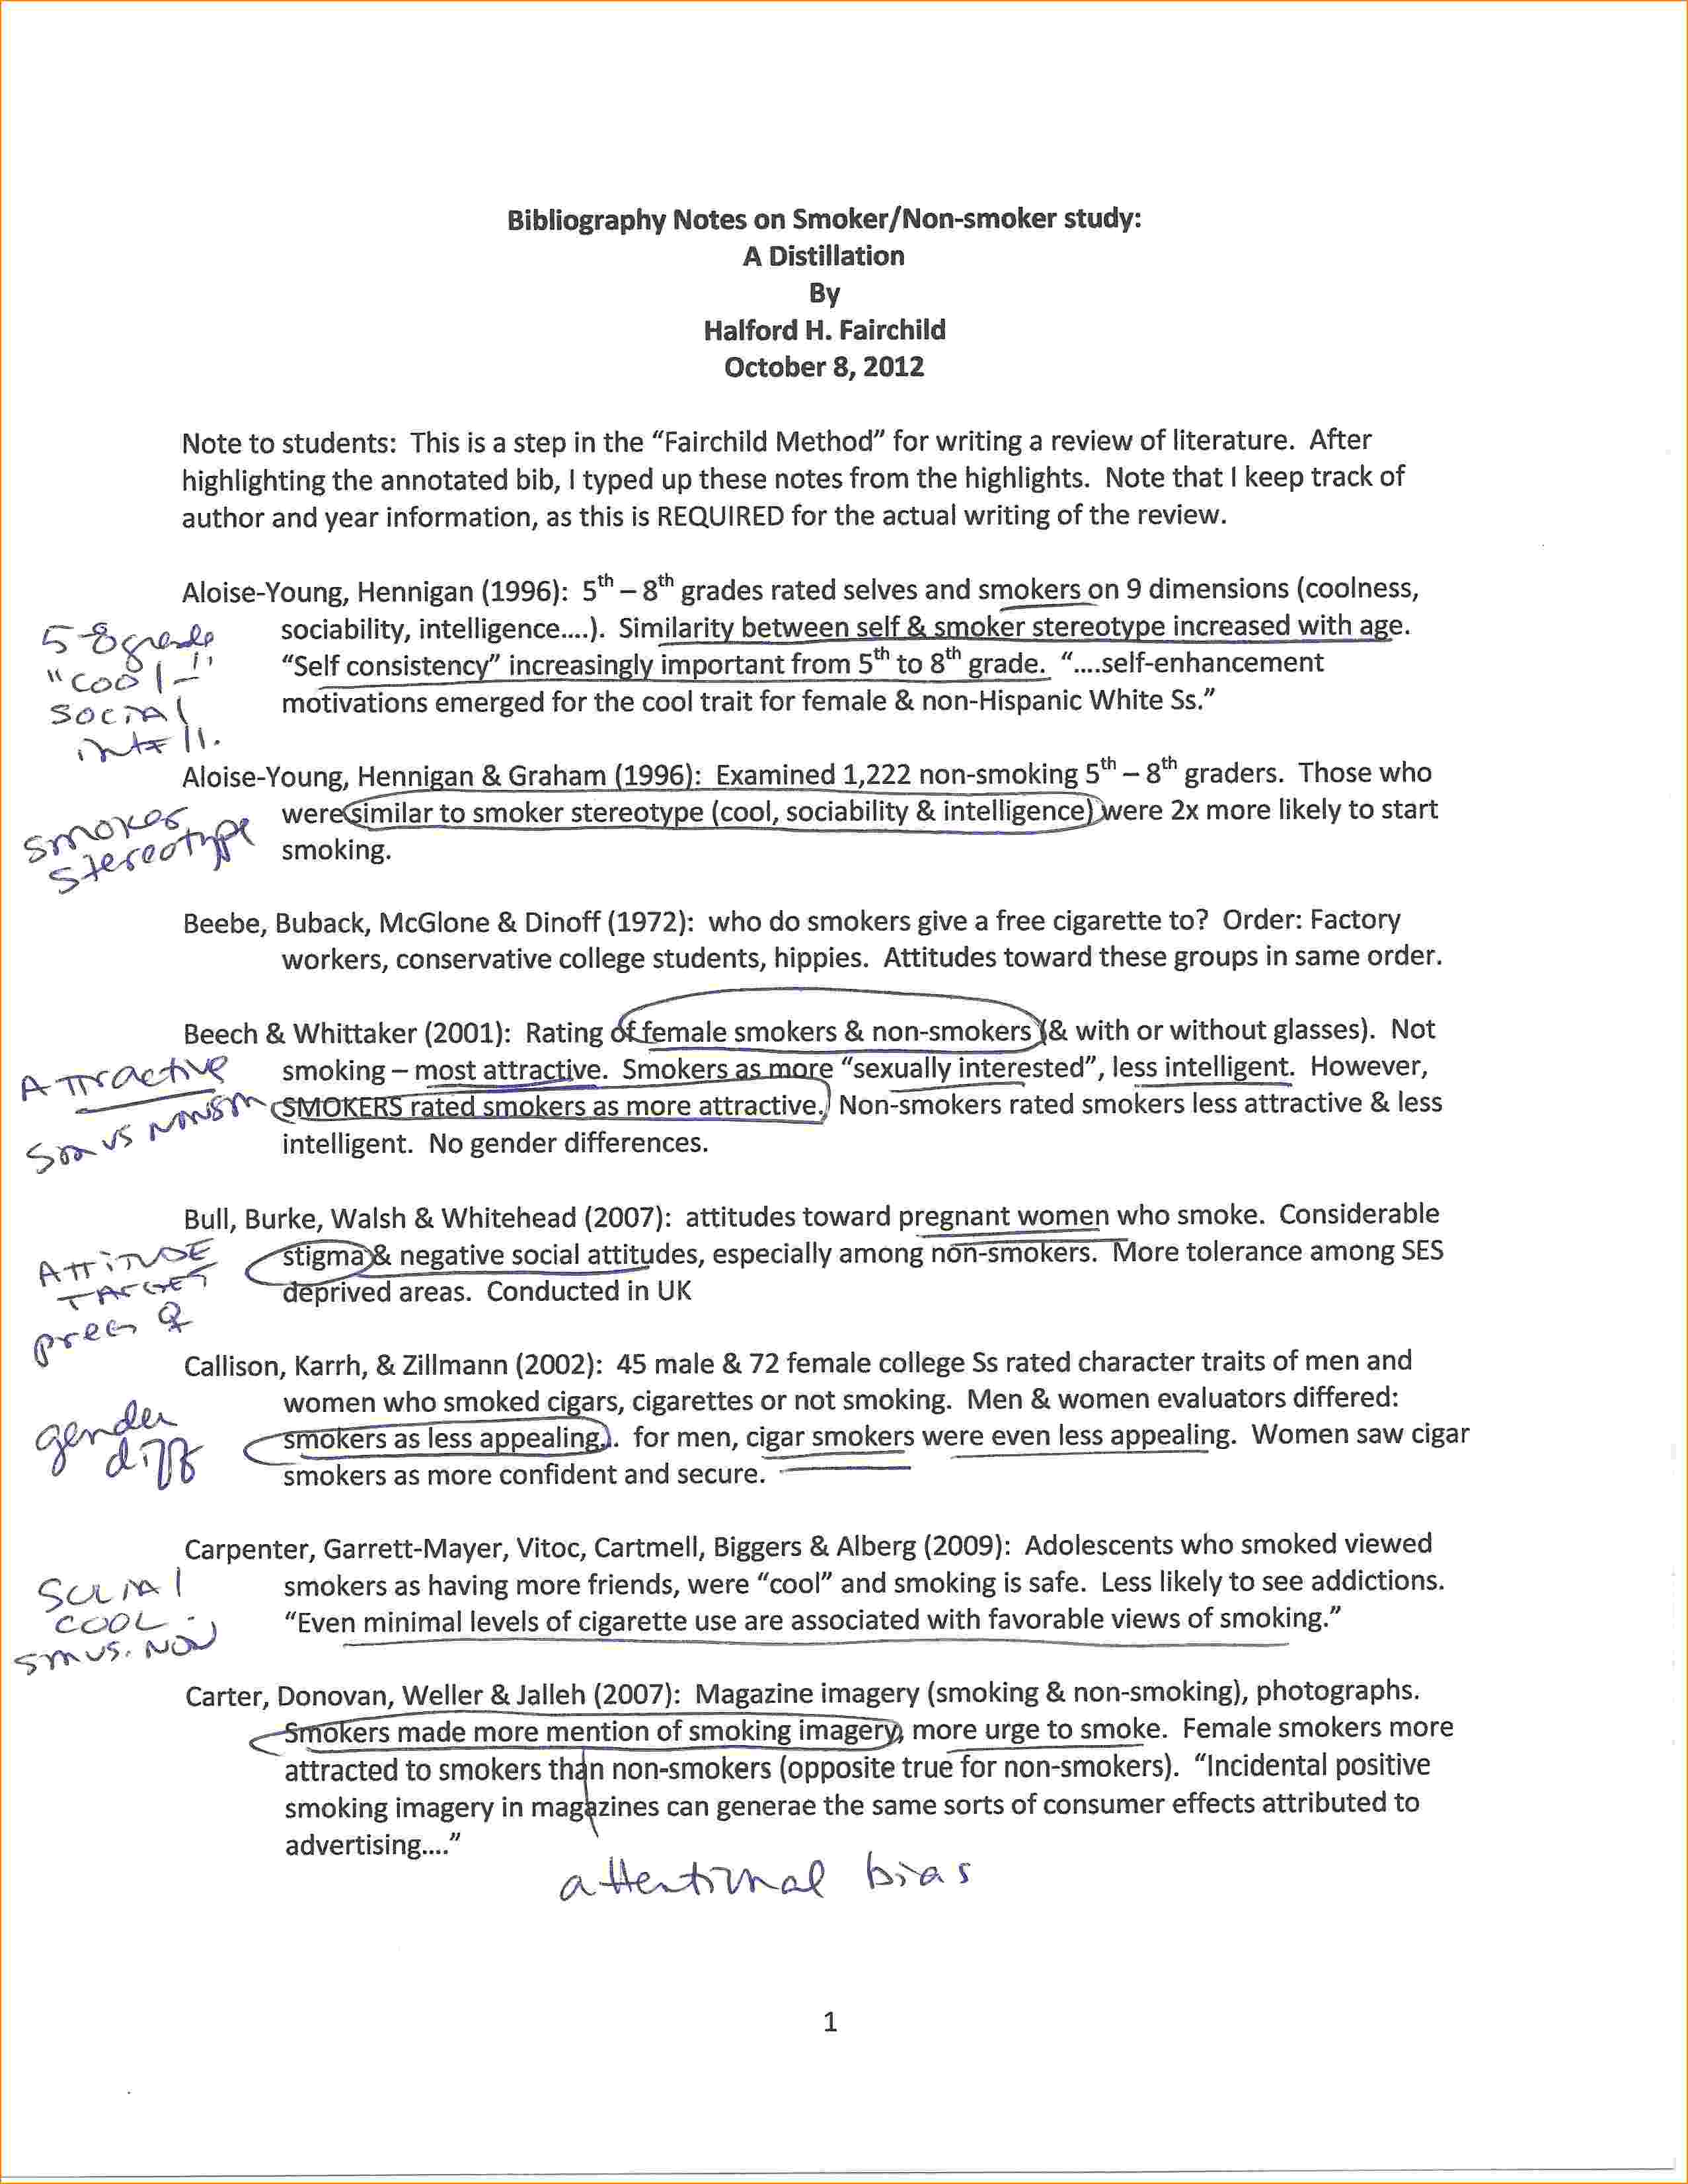 How to Write an Annotated Bibliography in APA: 7 Tips + Example